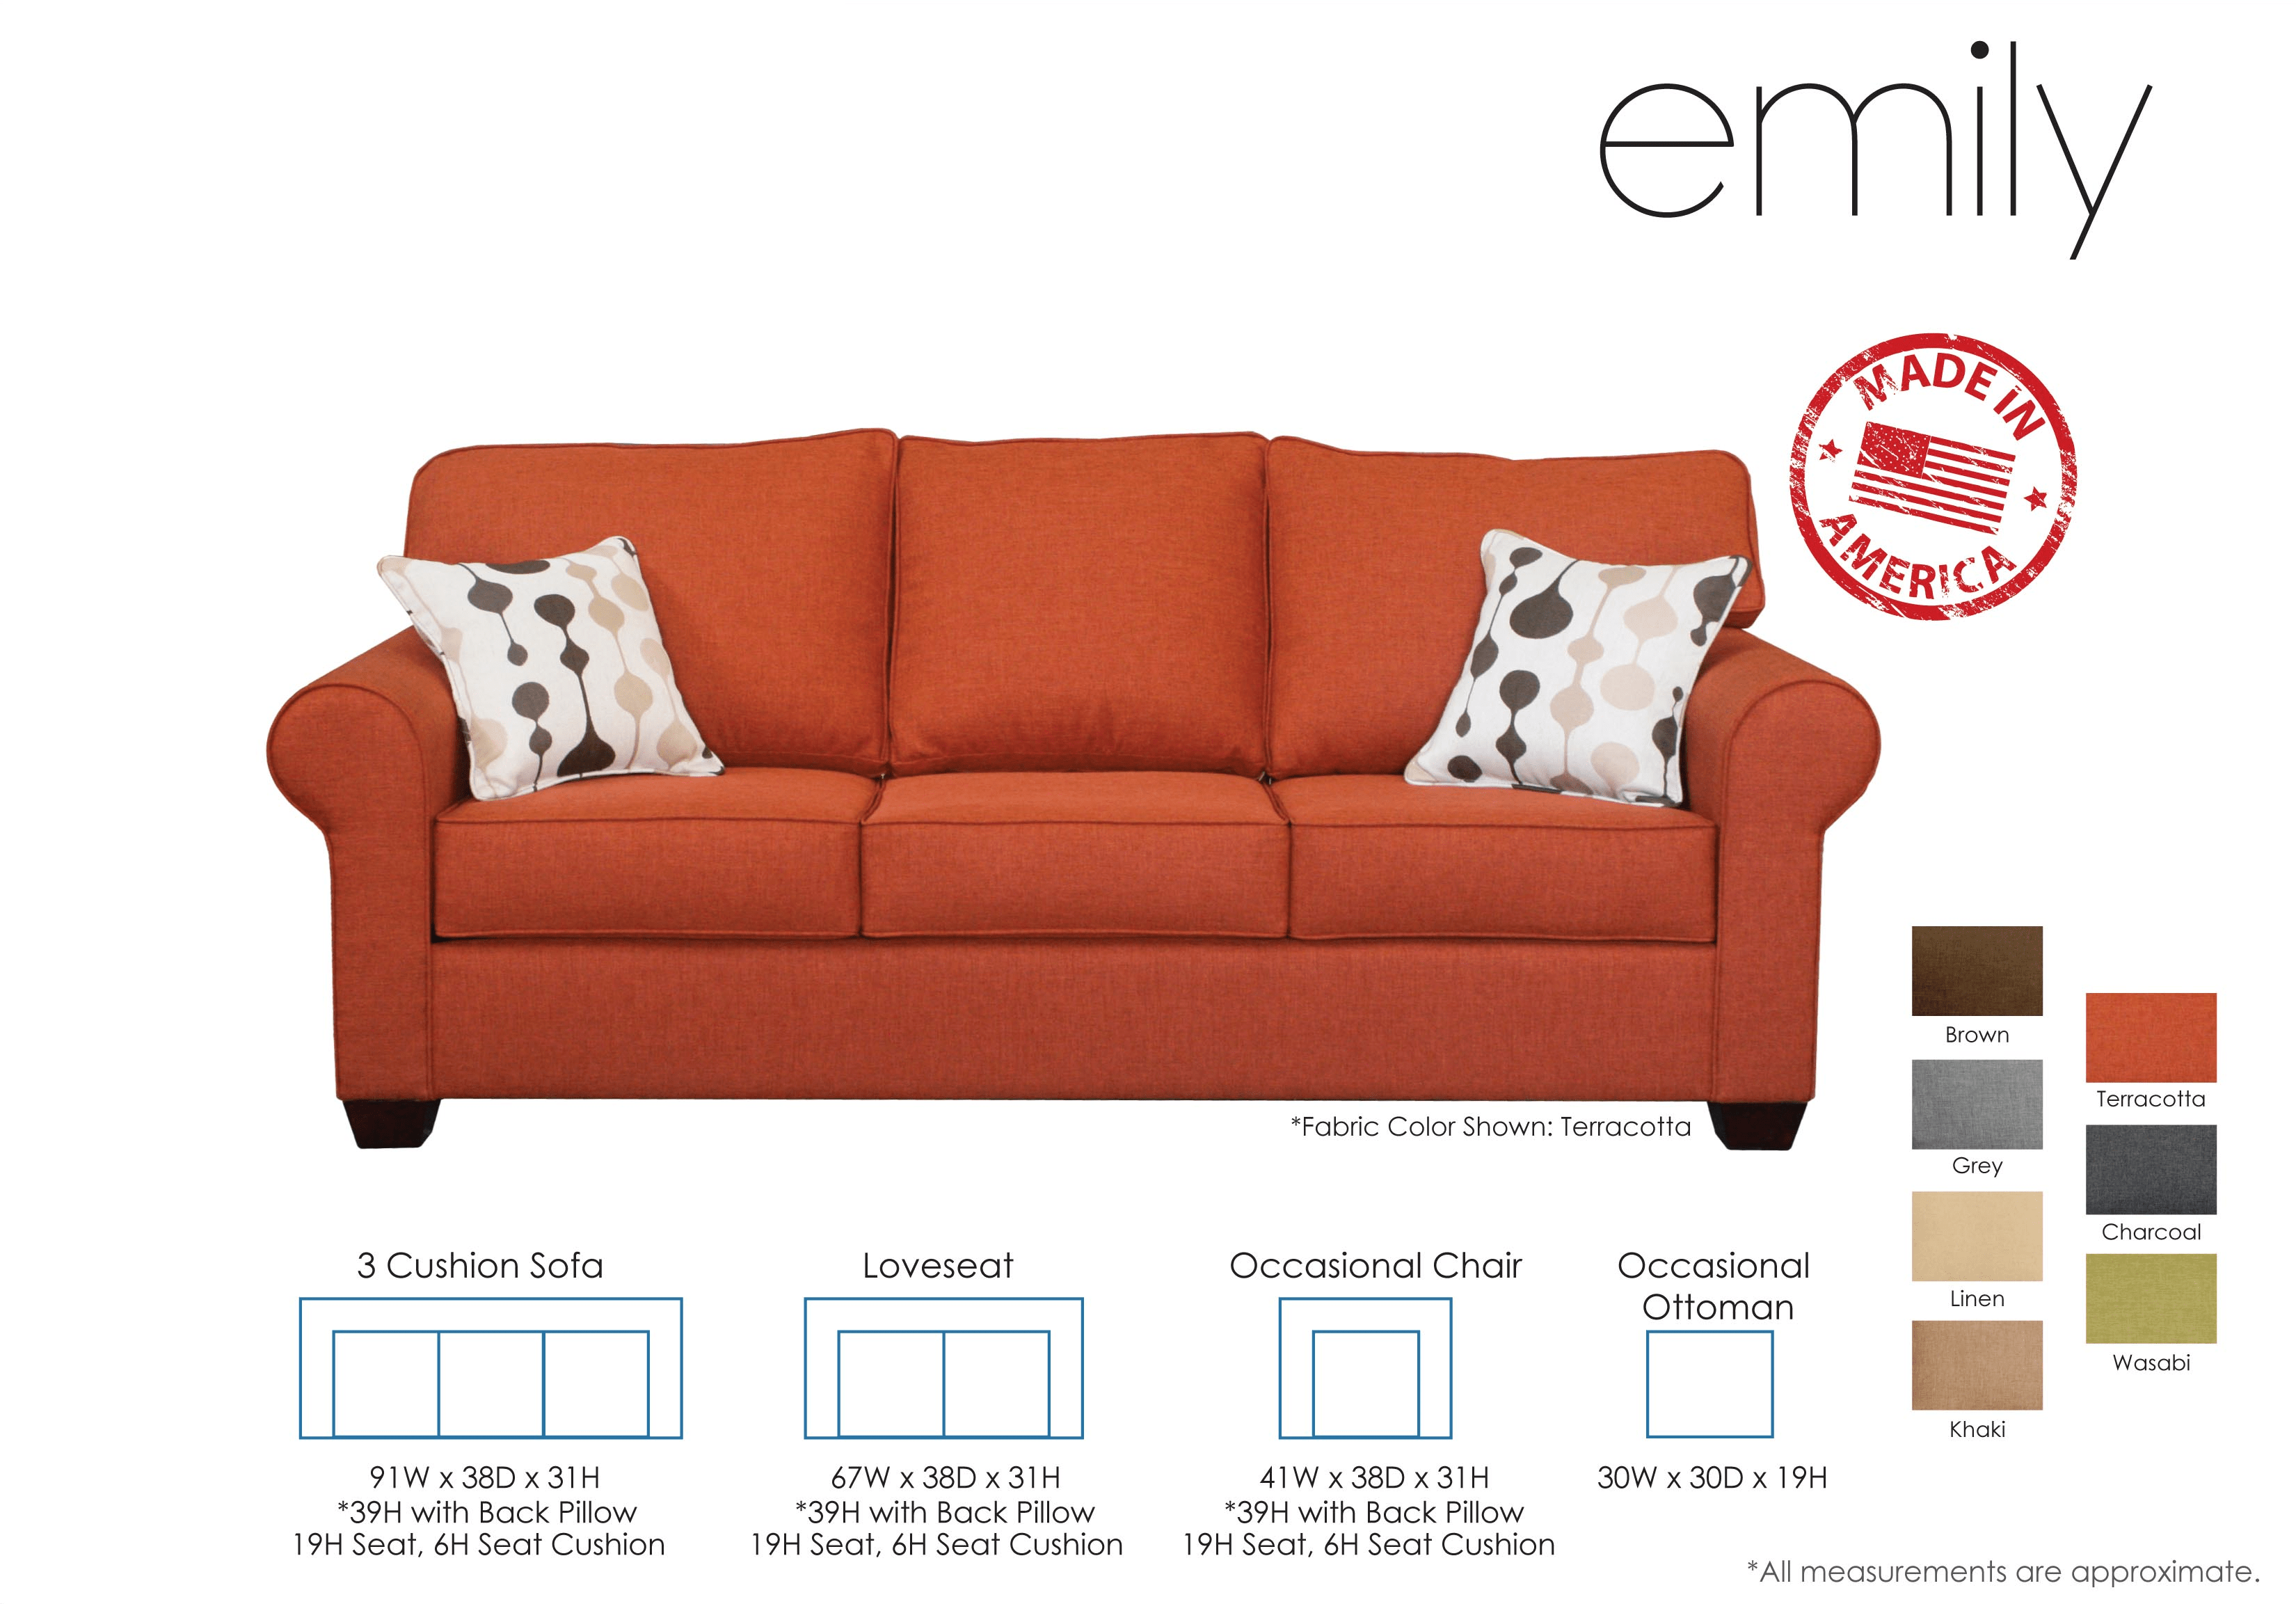 Sofas 4 Less Antioch Sofas 4 Less Livermore Ca | Review Home Decor